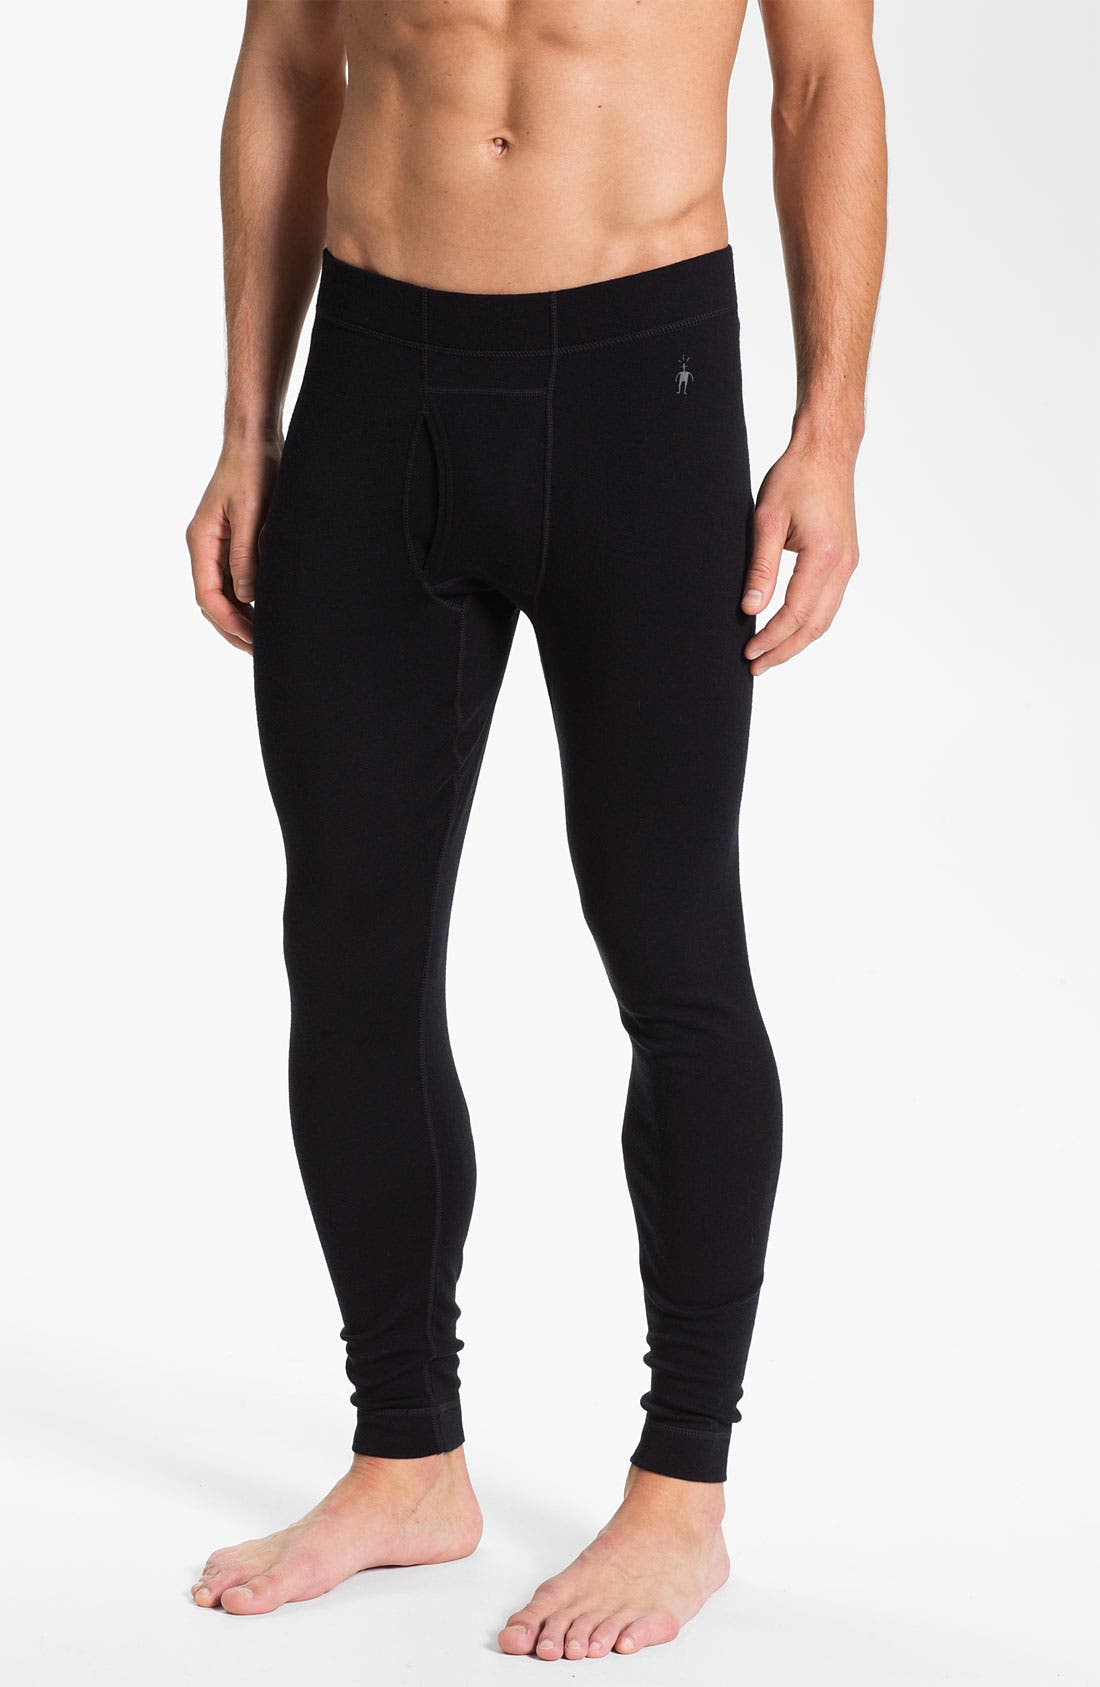 Alternate Image 1 Selected - Smartwool 'Midweight 250' Merino Wool Base Layer Tights